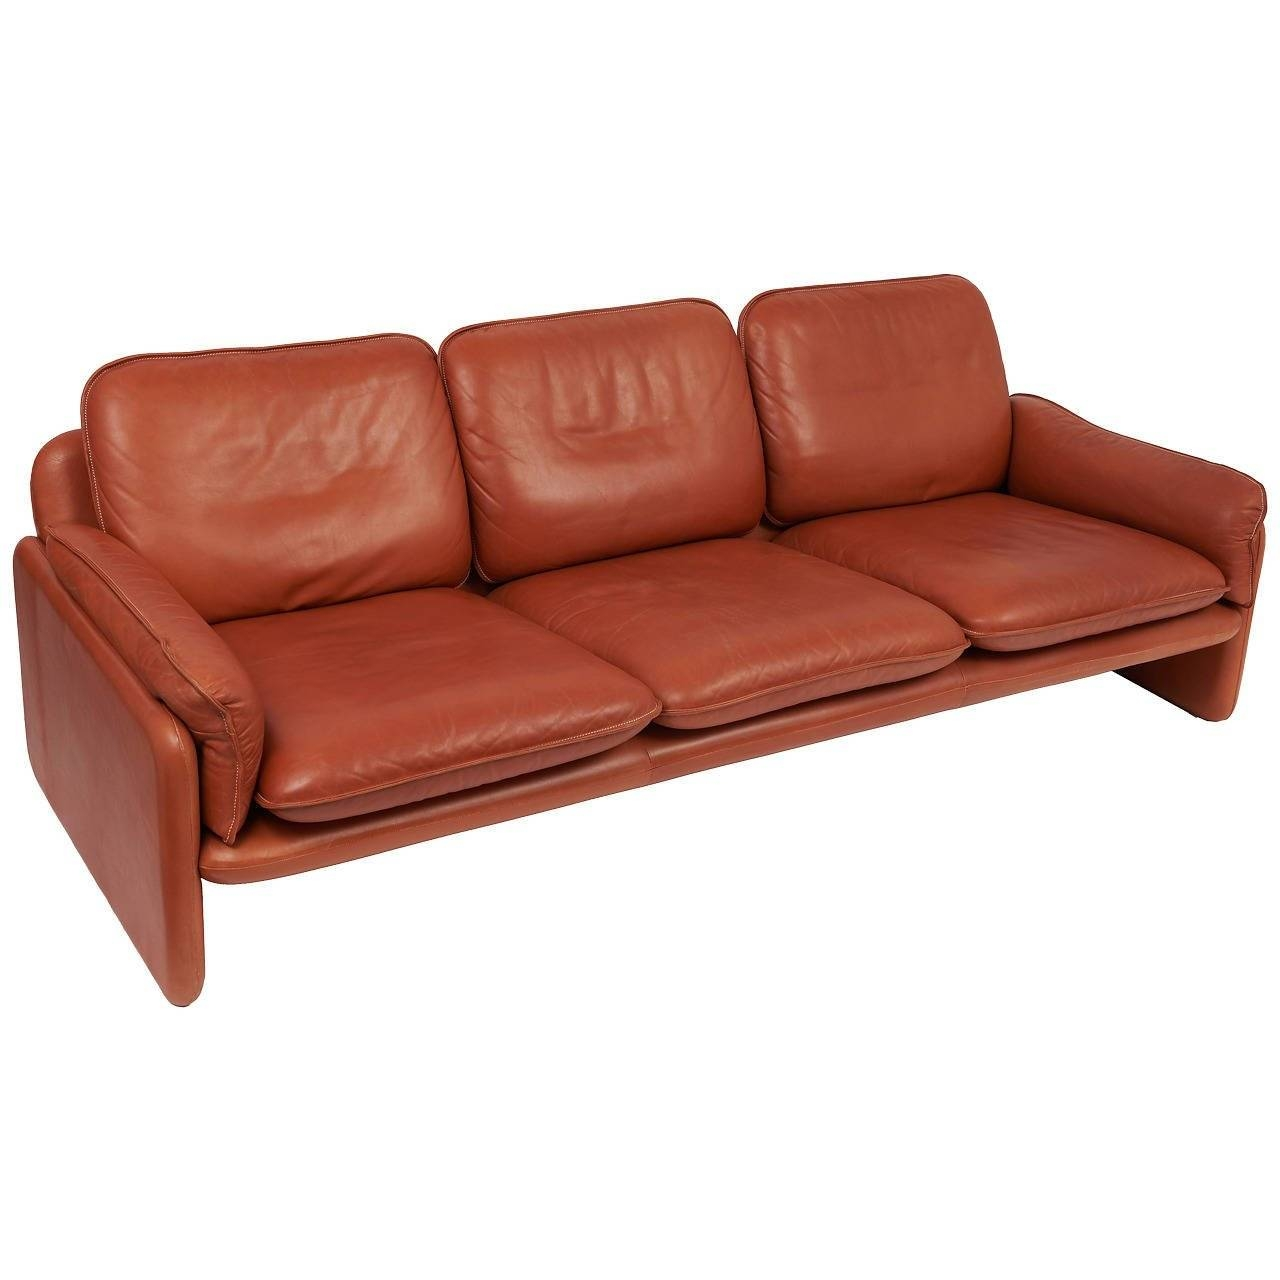 De Sede Three-Seat Cognac Aniline Leather Sofa, Circa 1970 For inside Aniline Leather Sofas (Image 16 of 30)